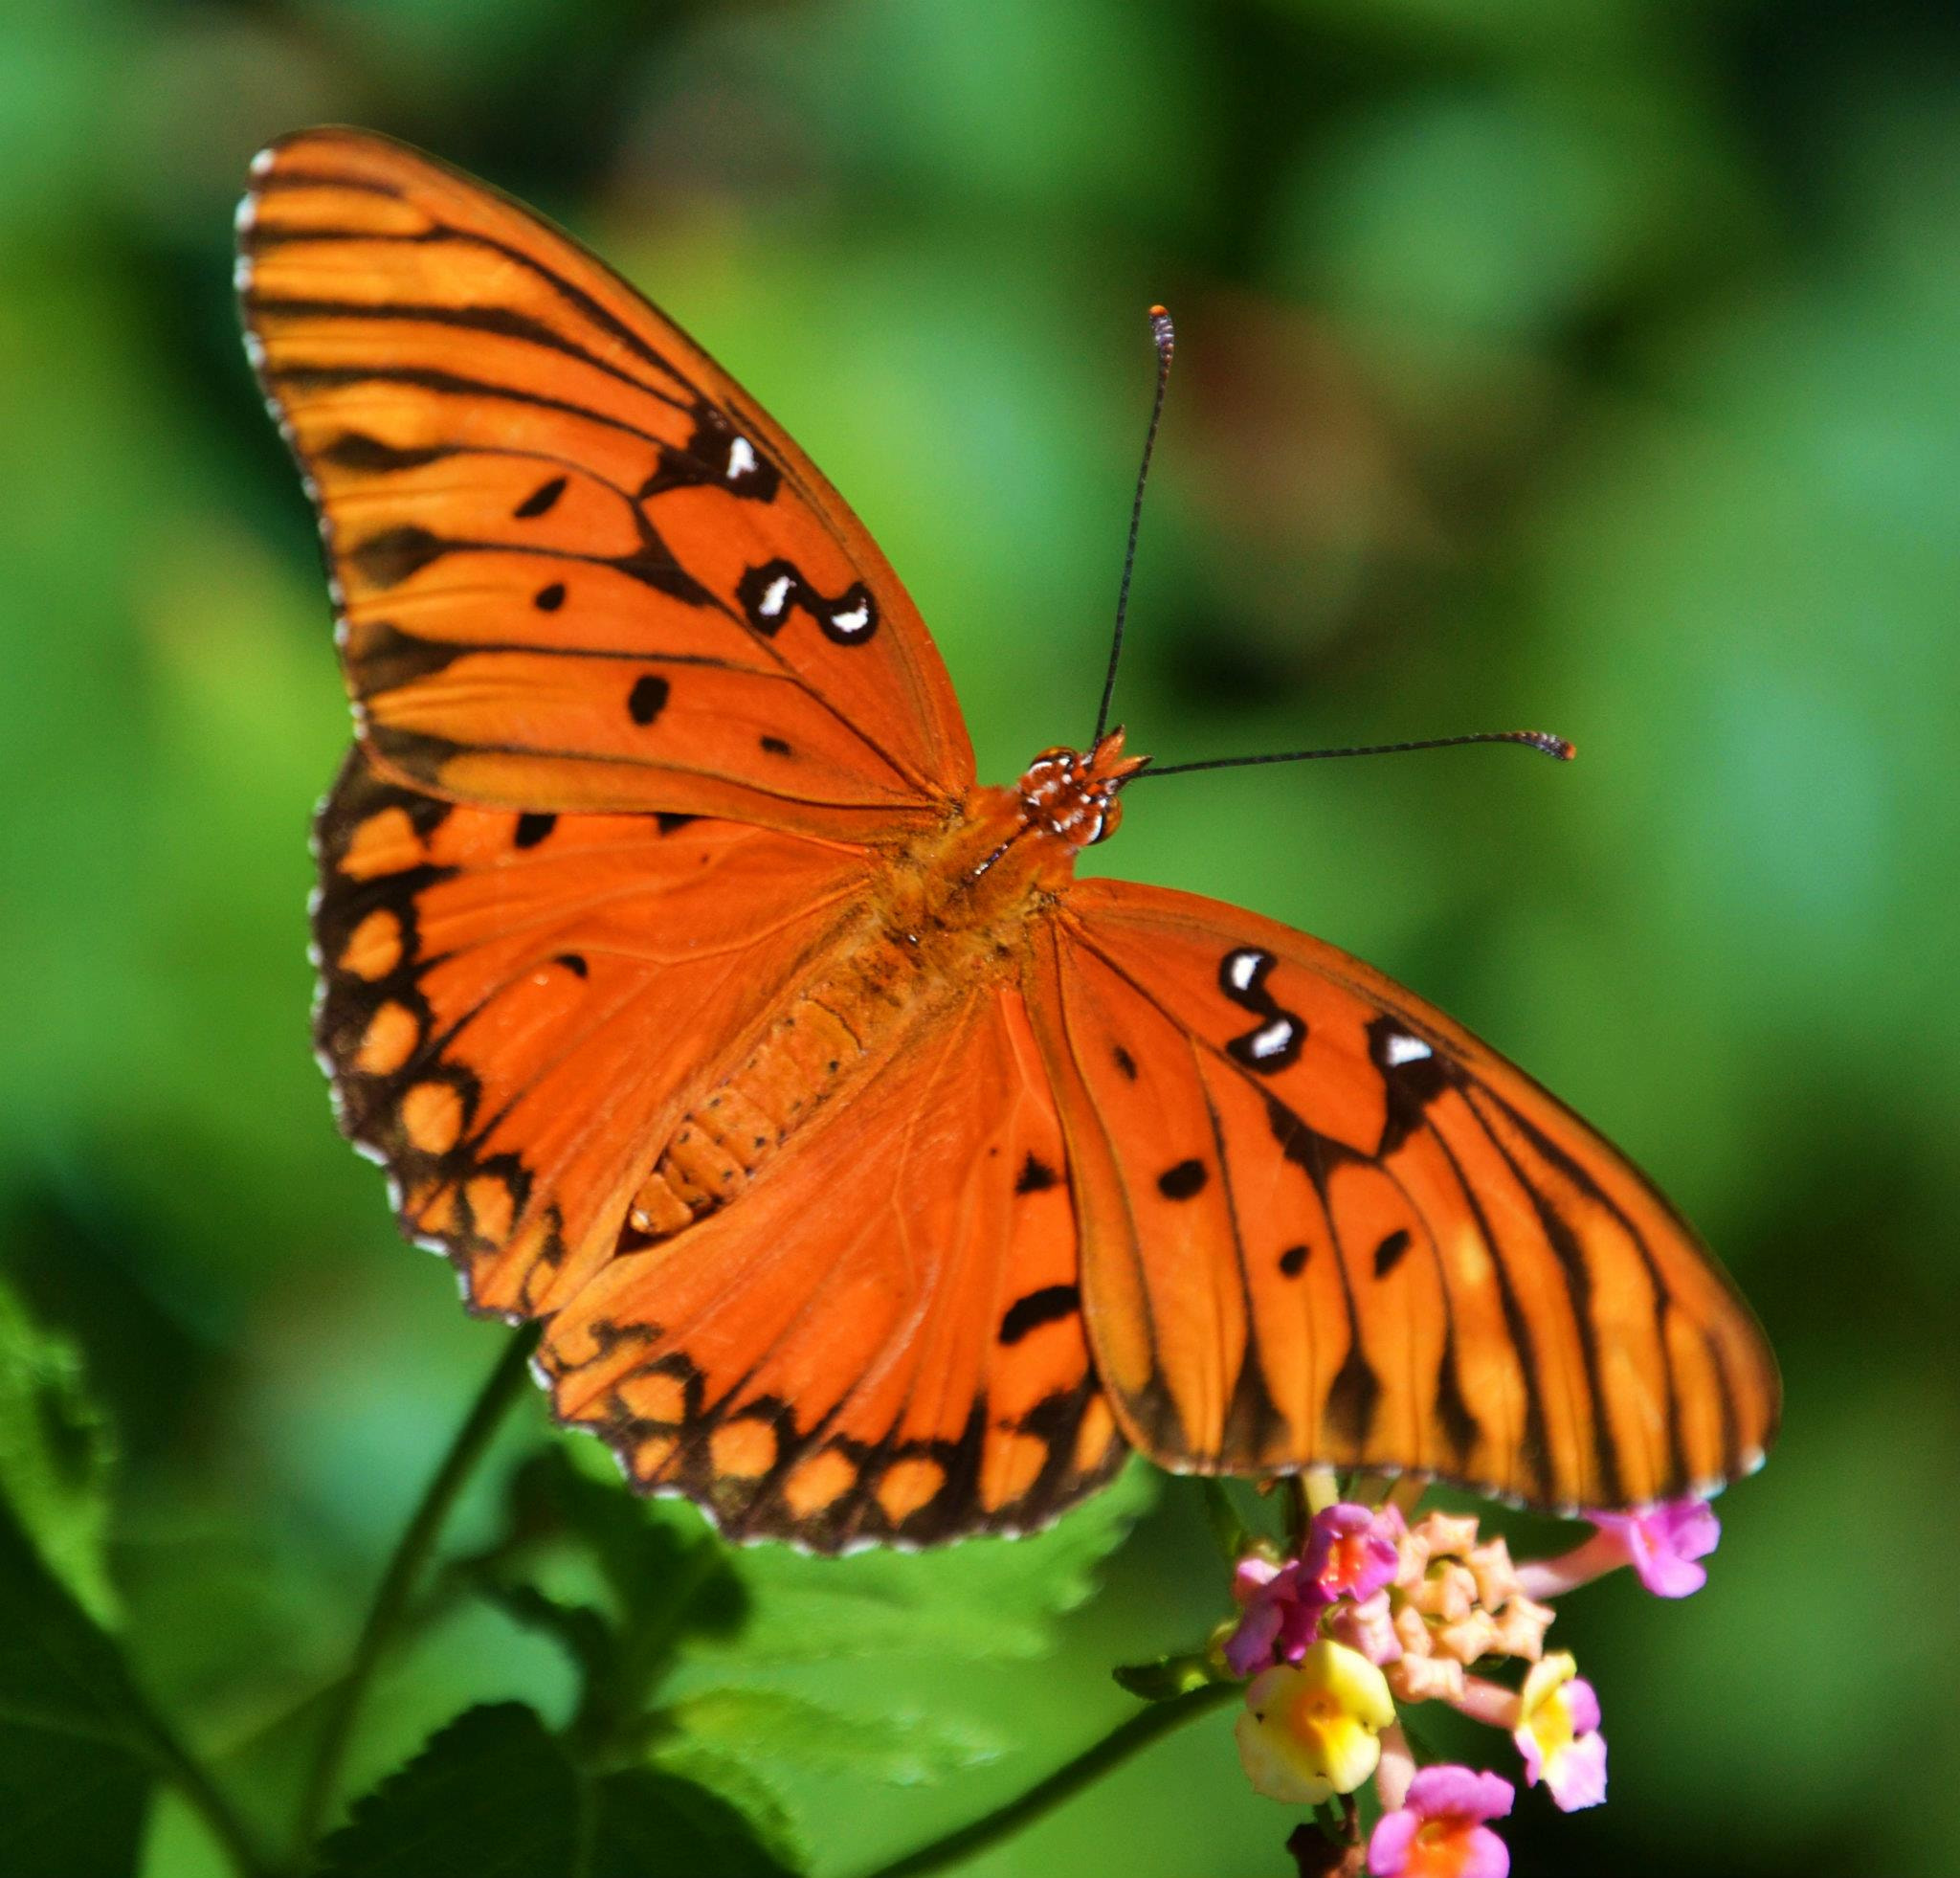 Photograph Mariposa by Michael Fitzsimmons on 500px